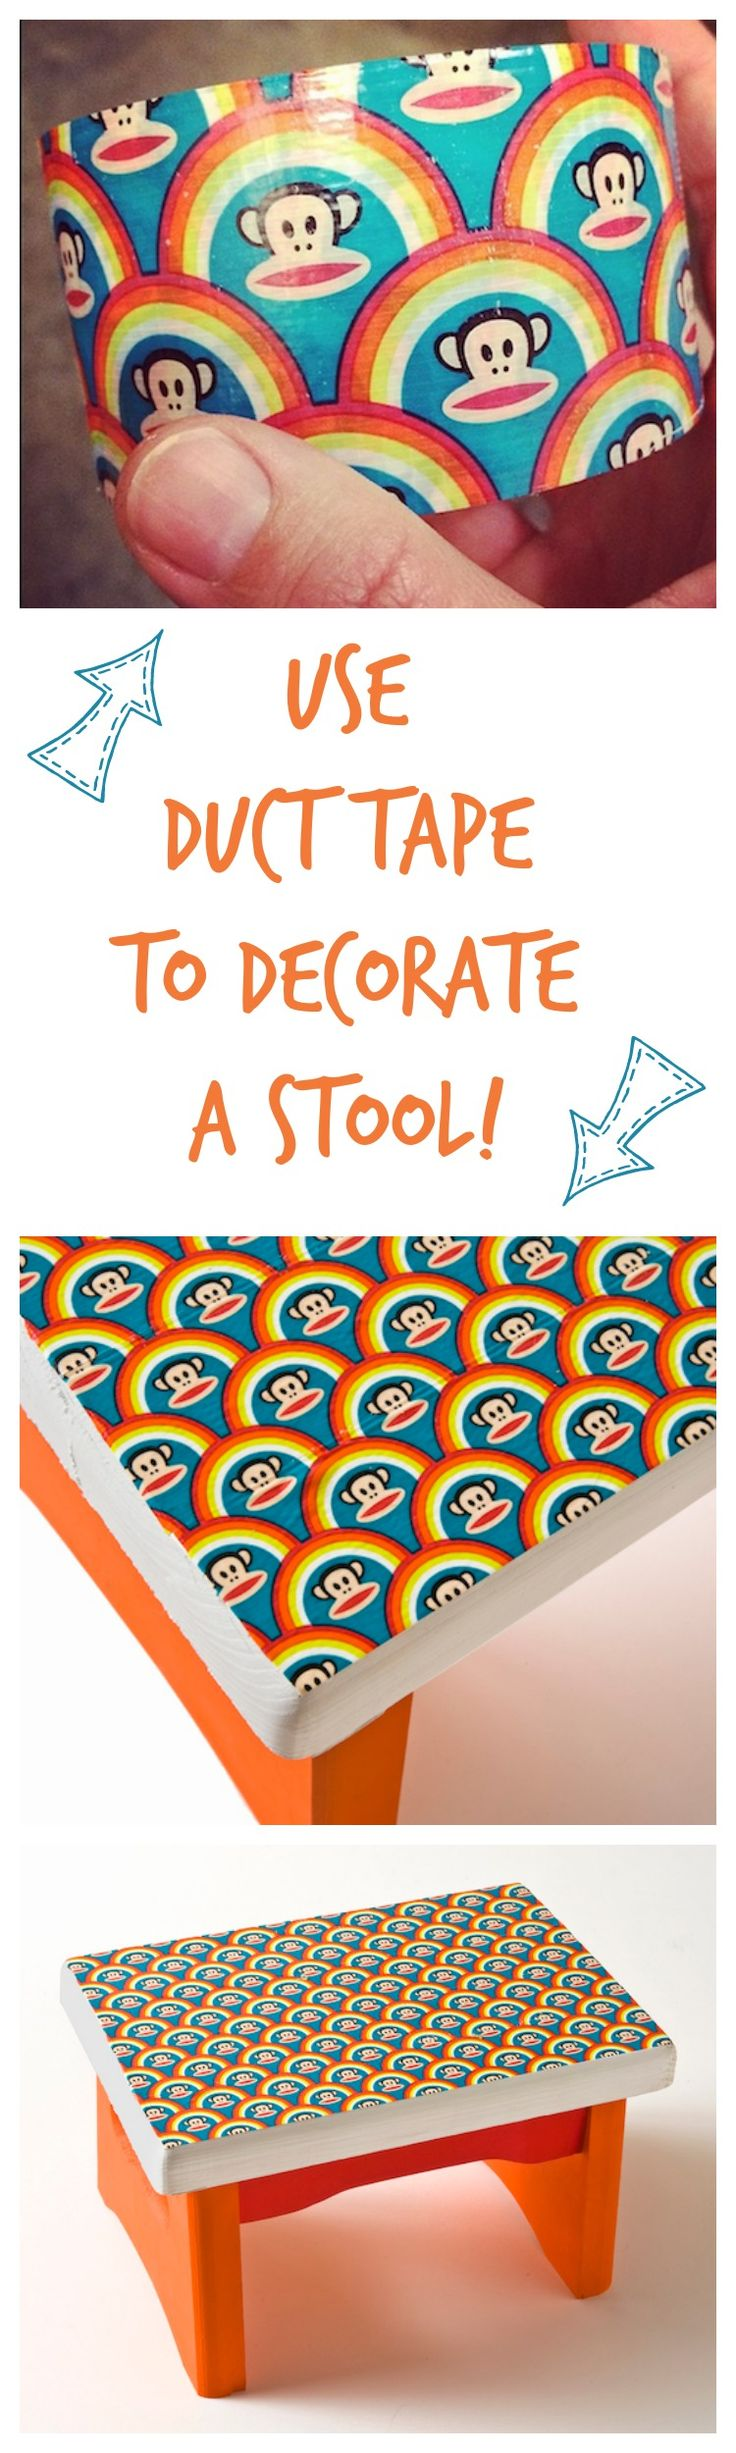 Use duct tape to decorate a stool - it's really easy! Except definitely not this monkey!!